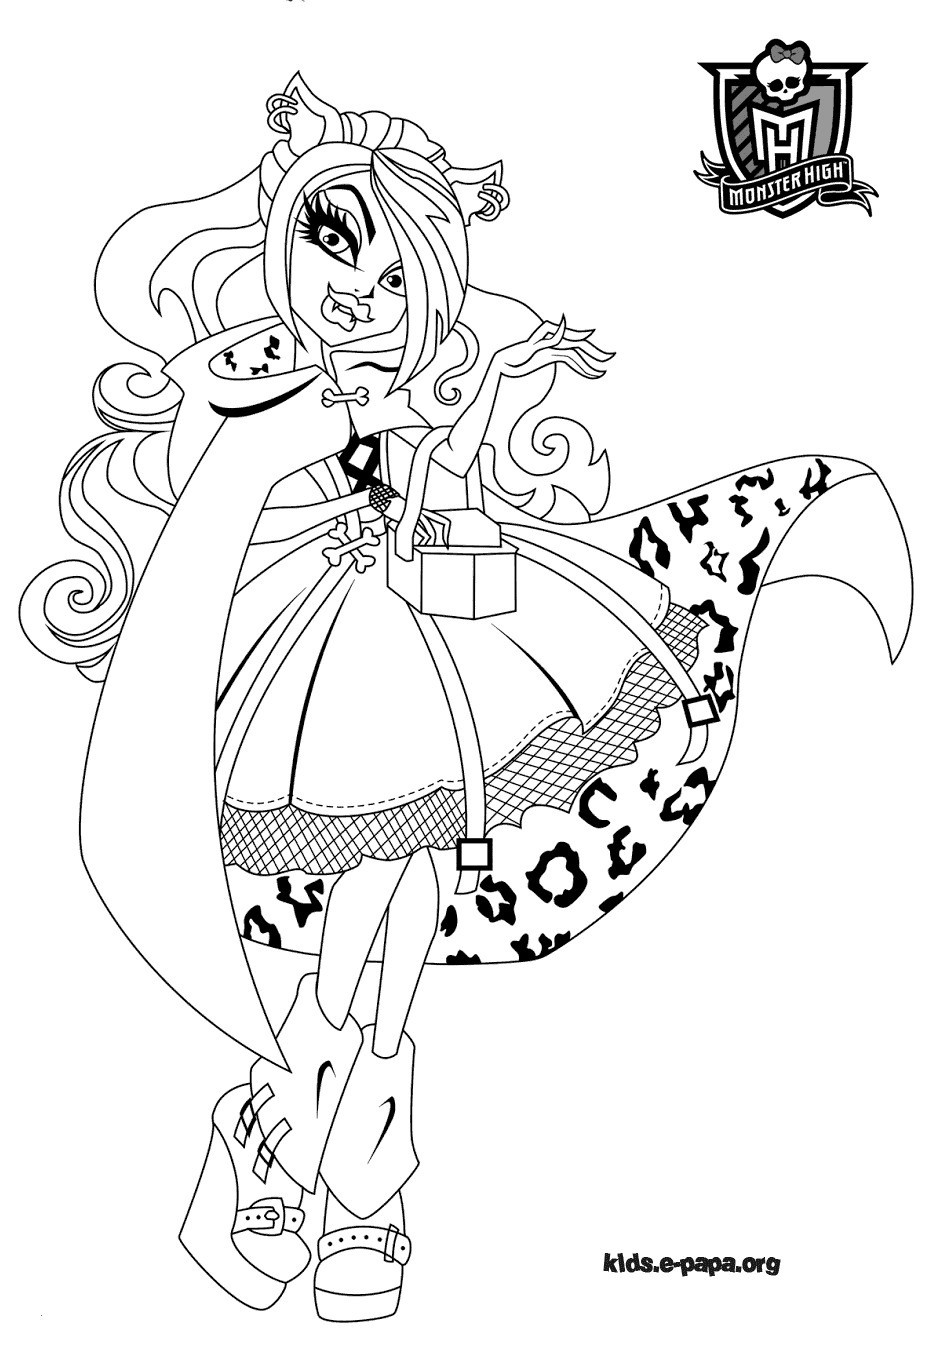 Monster High Ausmalbilder Das Beste Von Clawdeen Wolf Monster High Coloring Page Elegant Monster High Sammlung